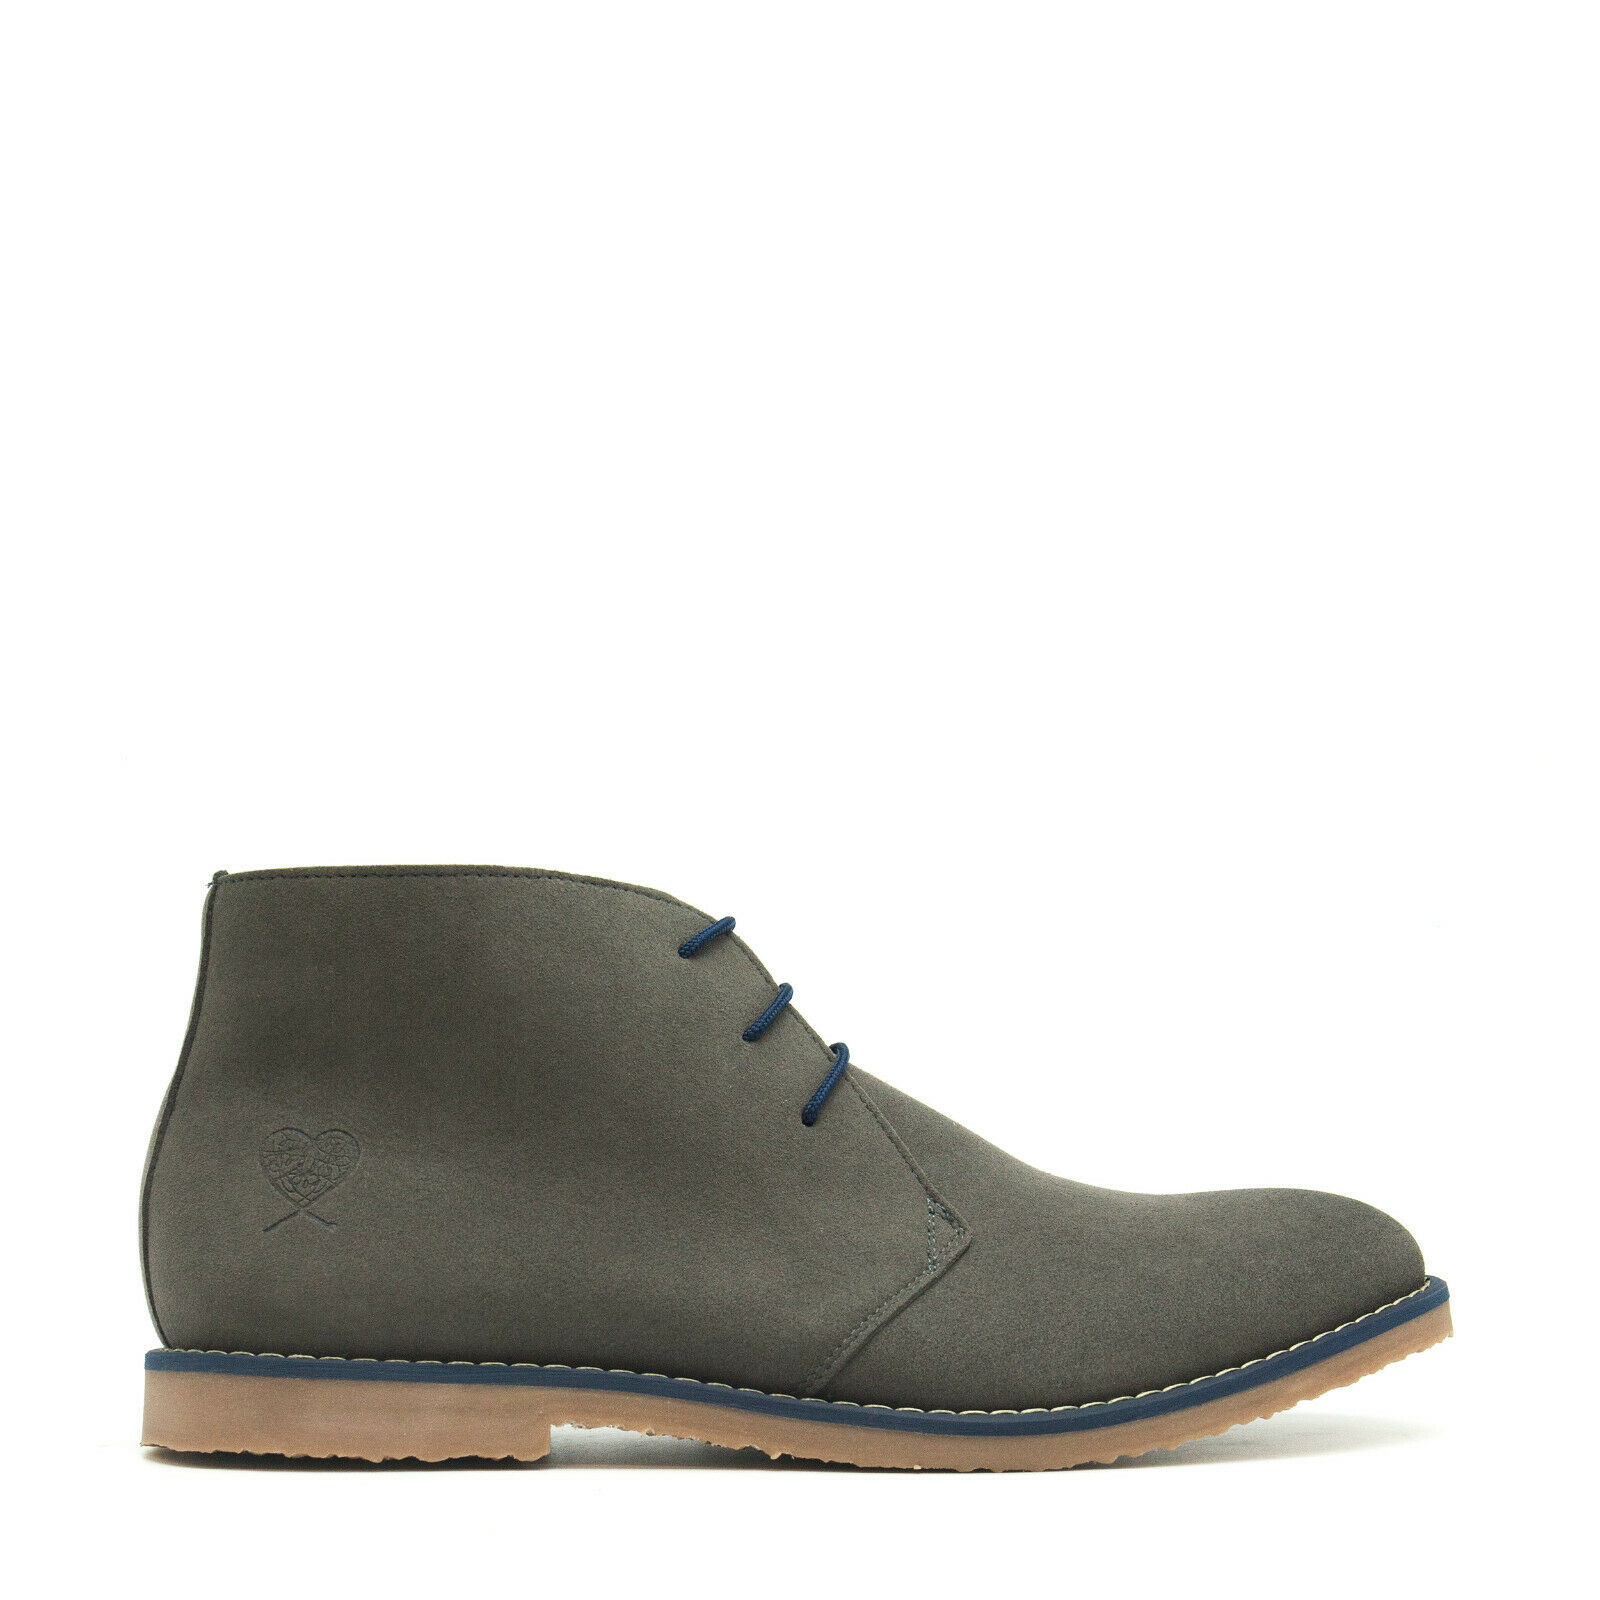 Vegan Ankle Boot Clark Desert Casual Microsuede lace-up Lined Breathable daily